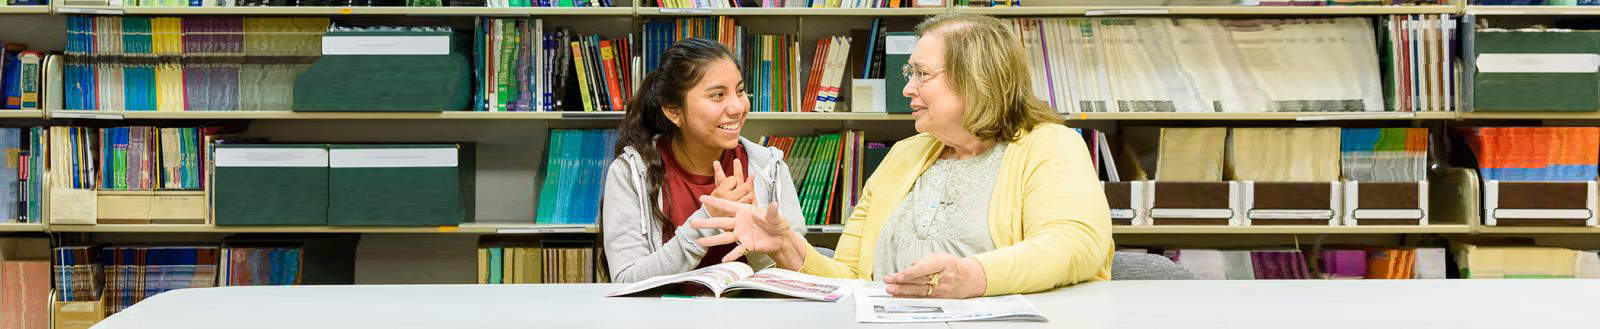 Older lady mentoring younger female student